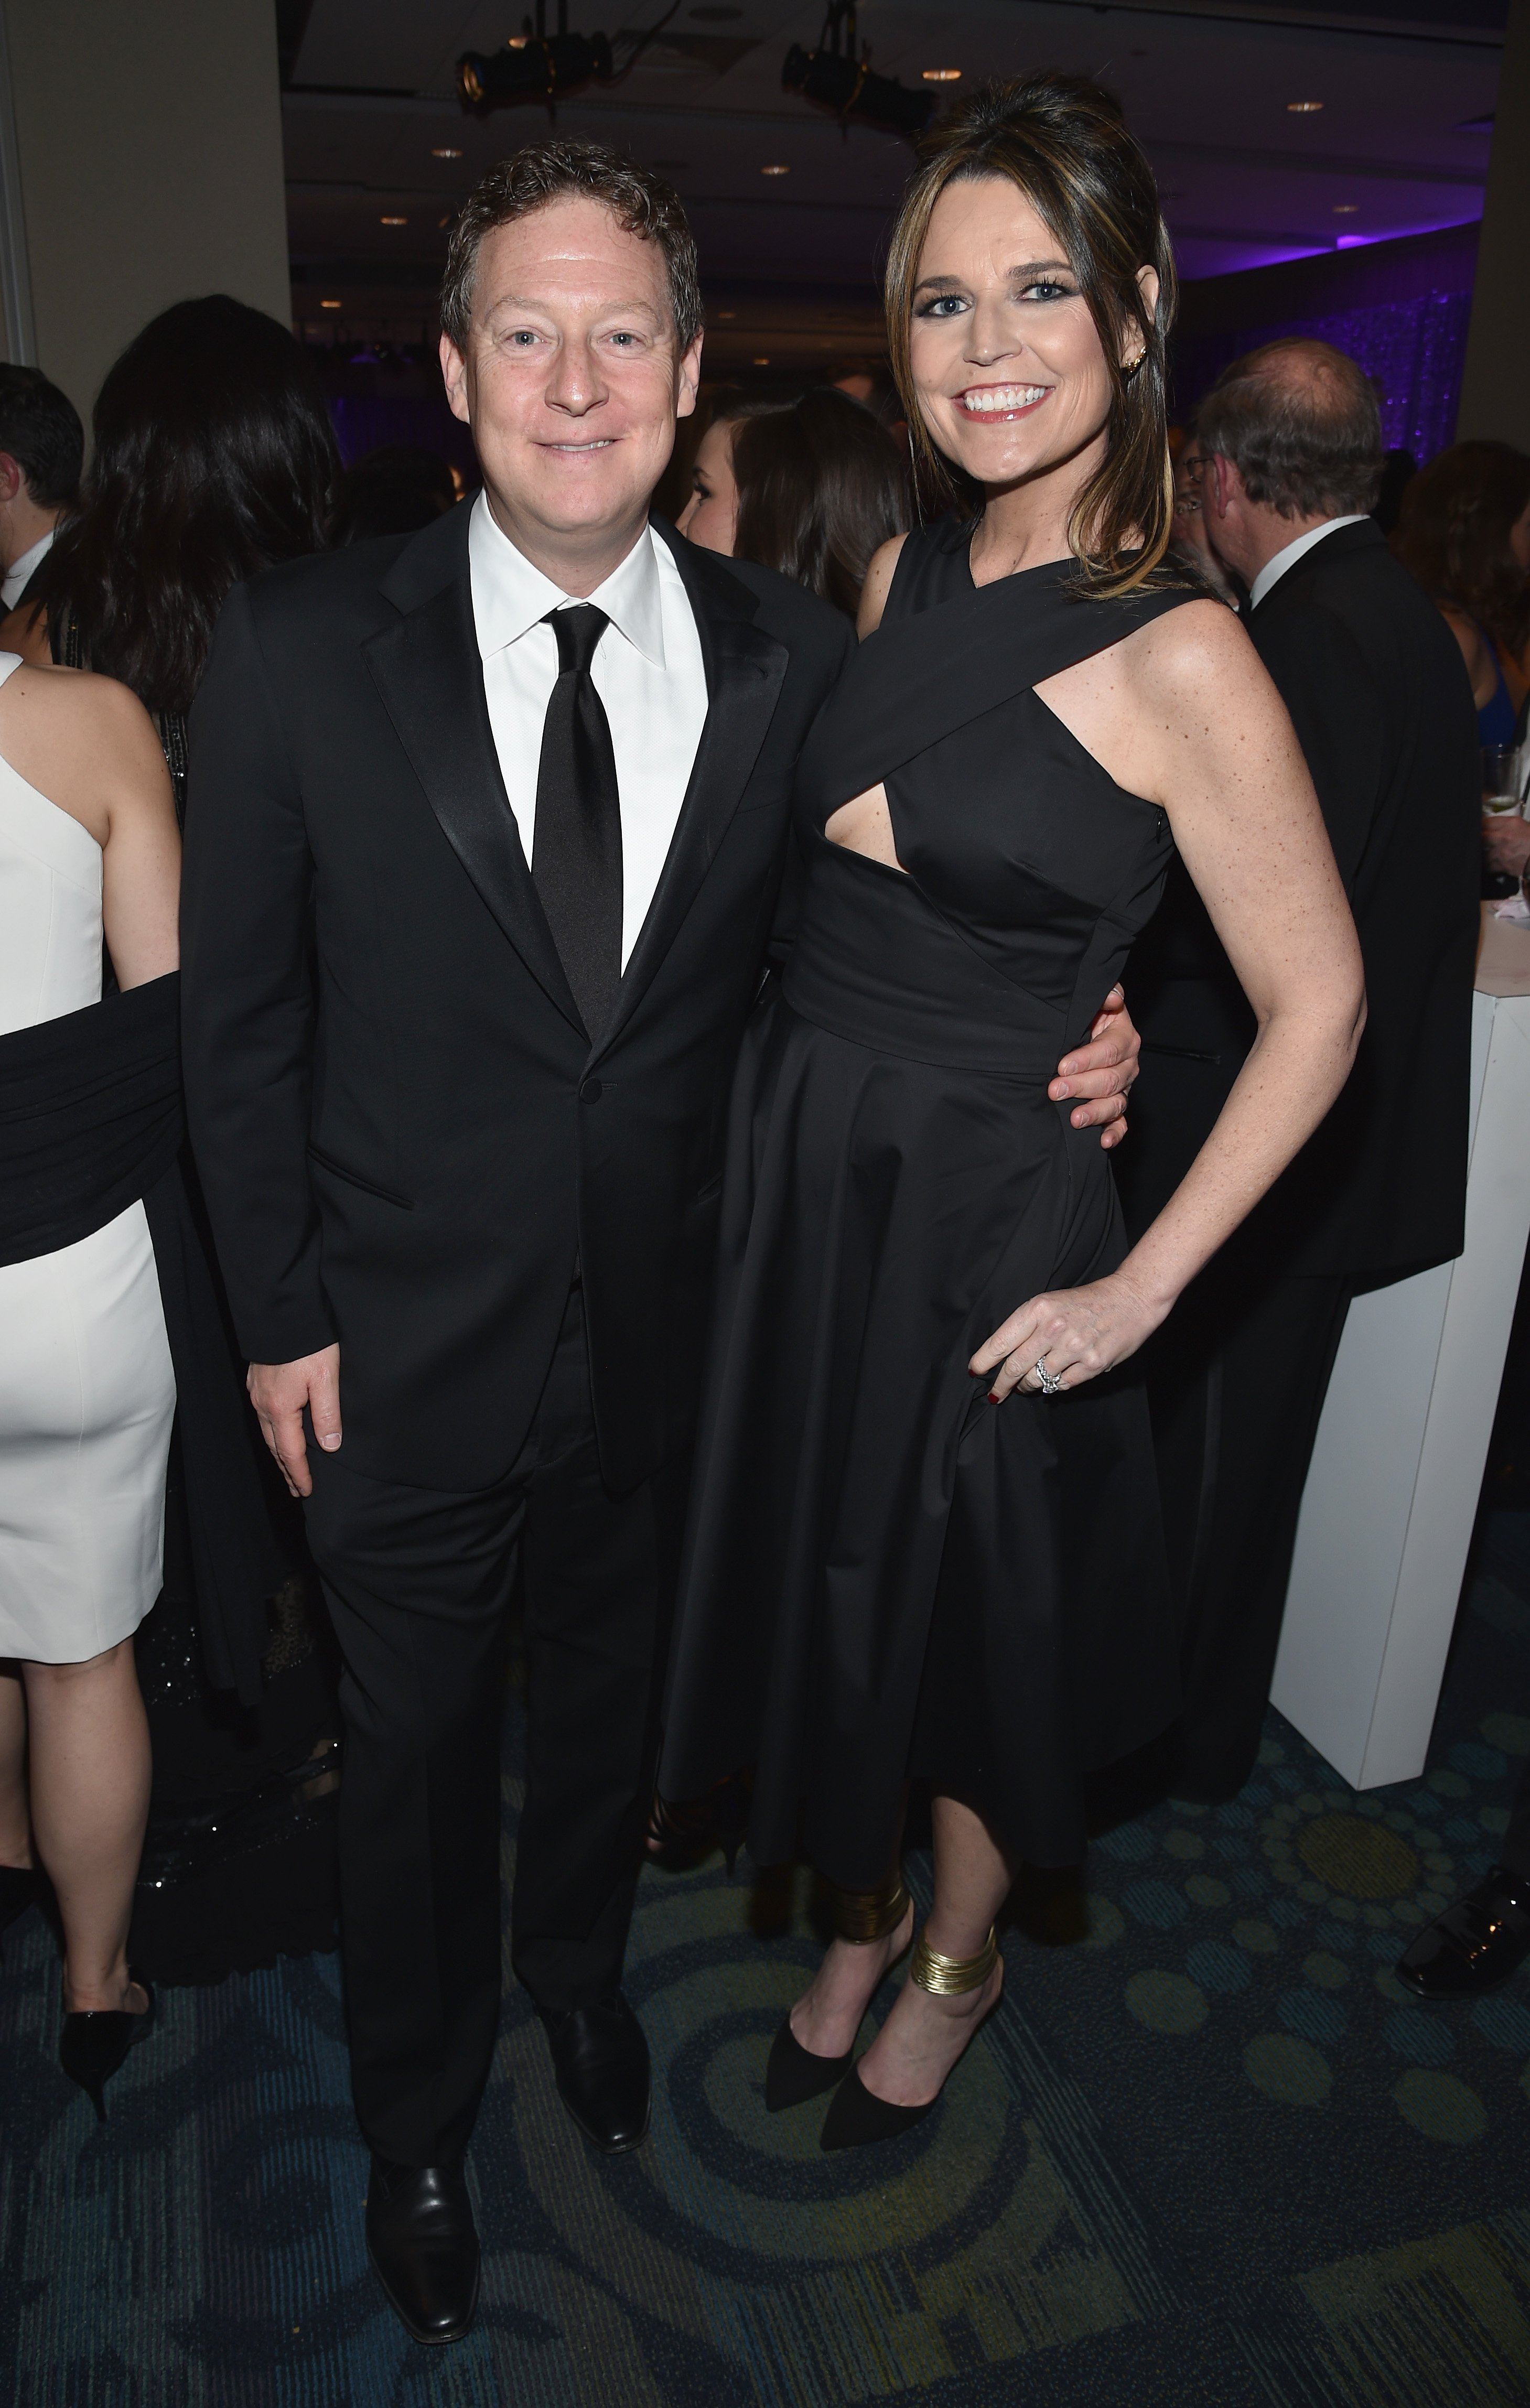 Image Credits: Getty Images | Savannah Guthrie with husband Mike Feldman